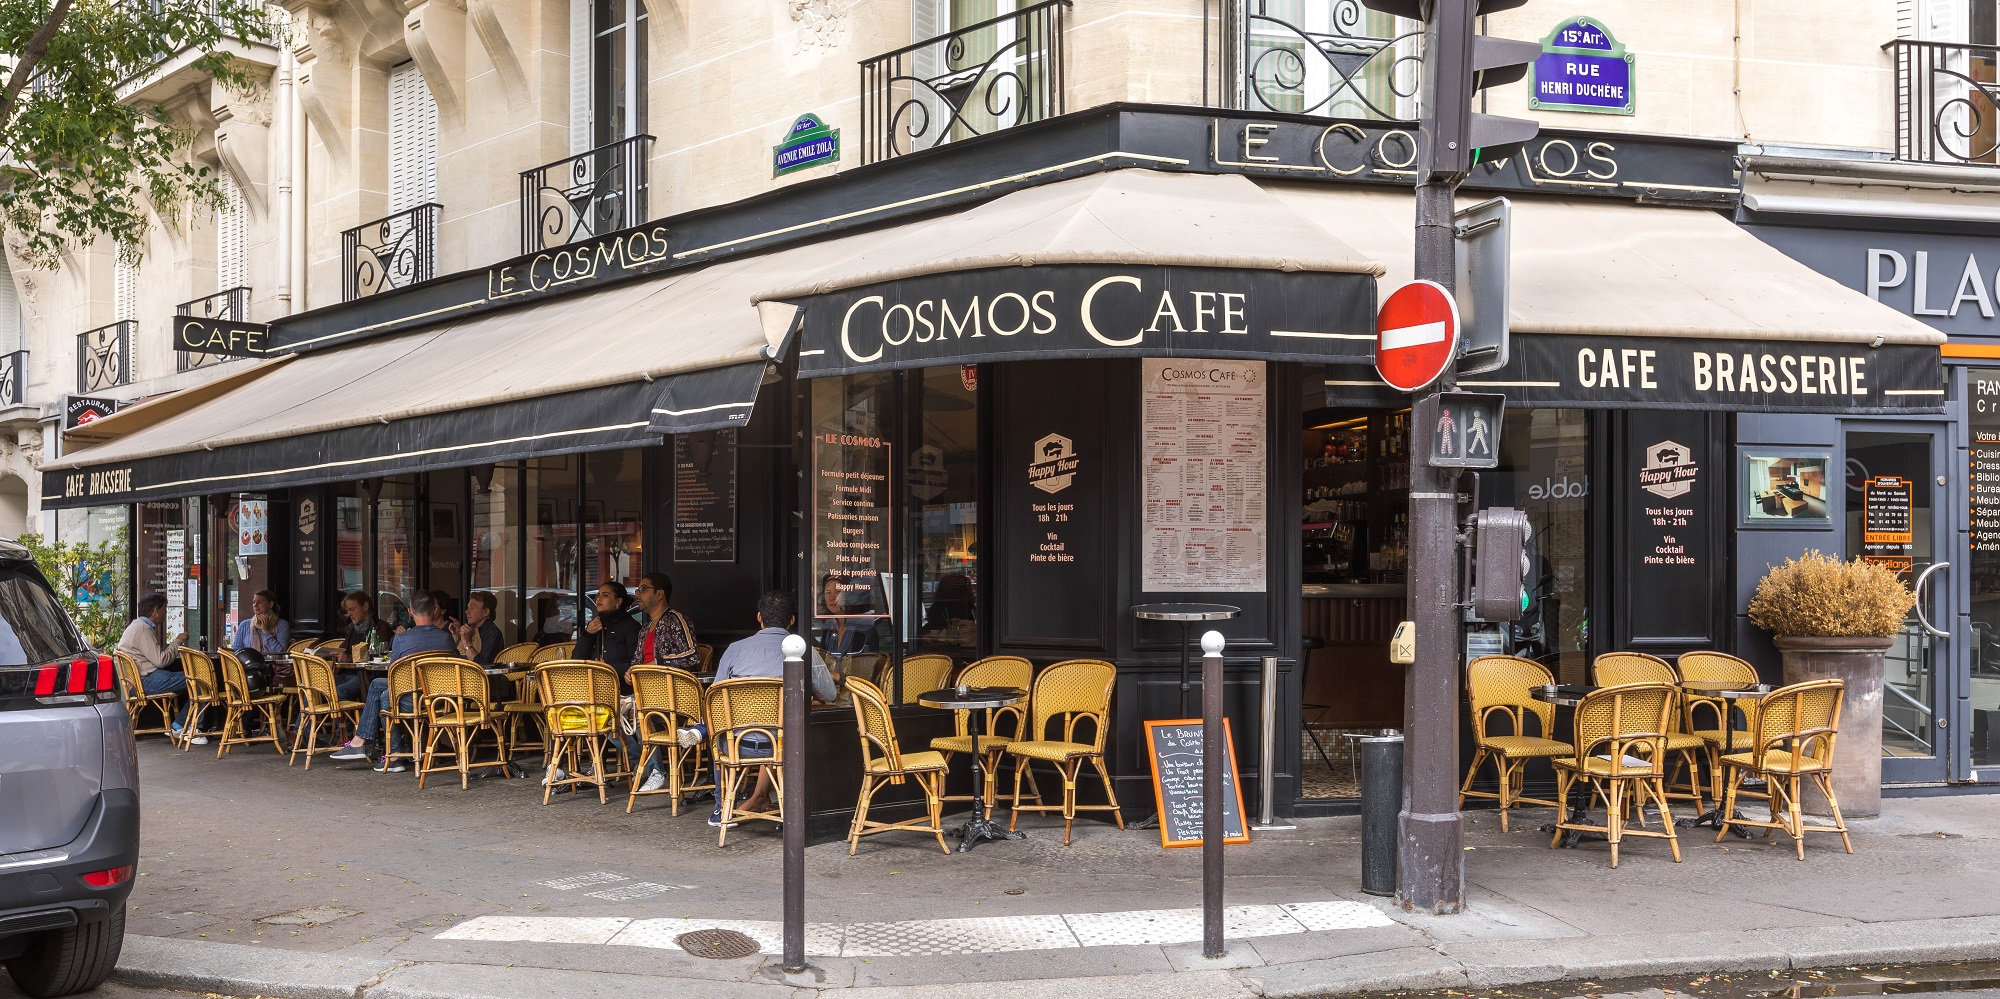 Brunch Cosmos (75015 Paris 15ème)